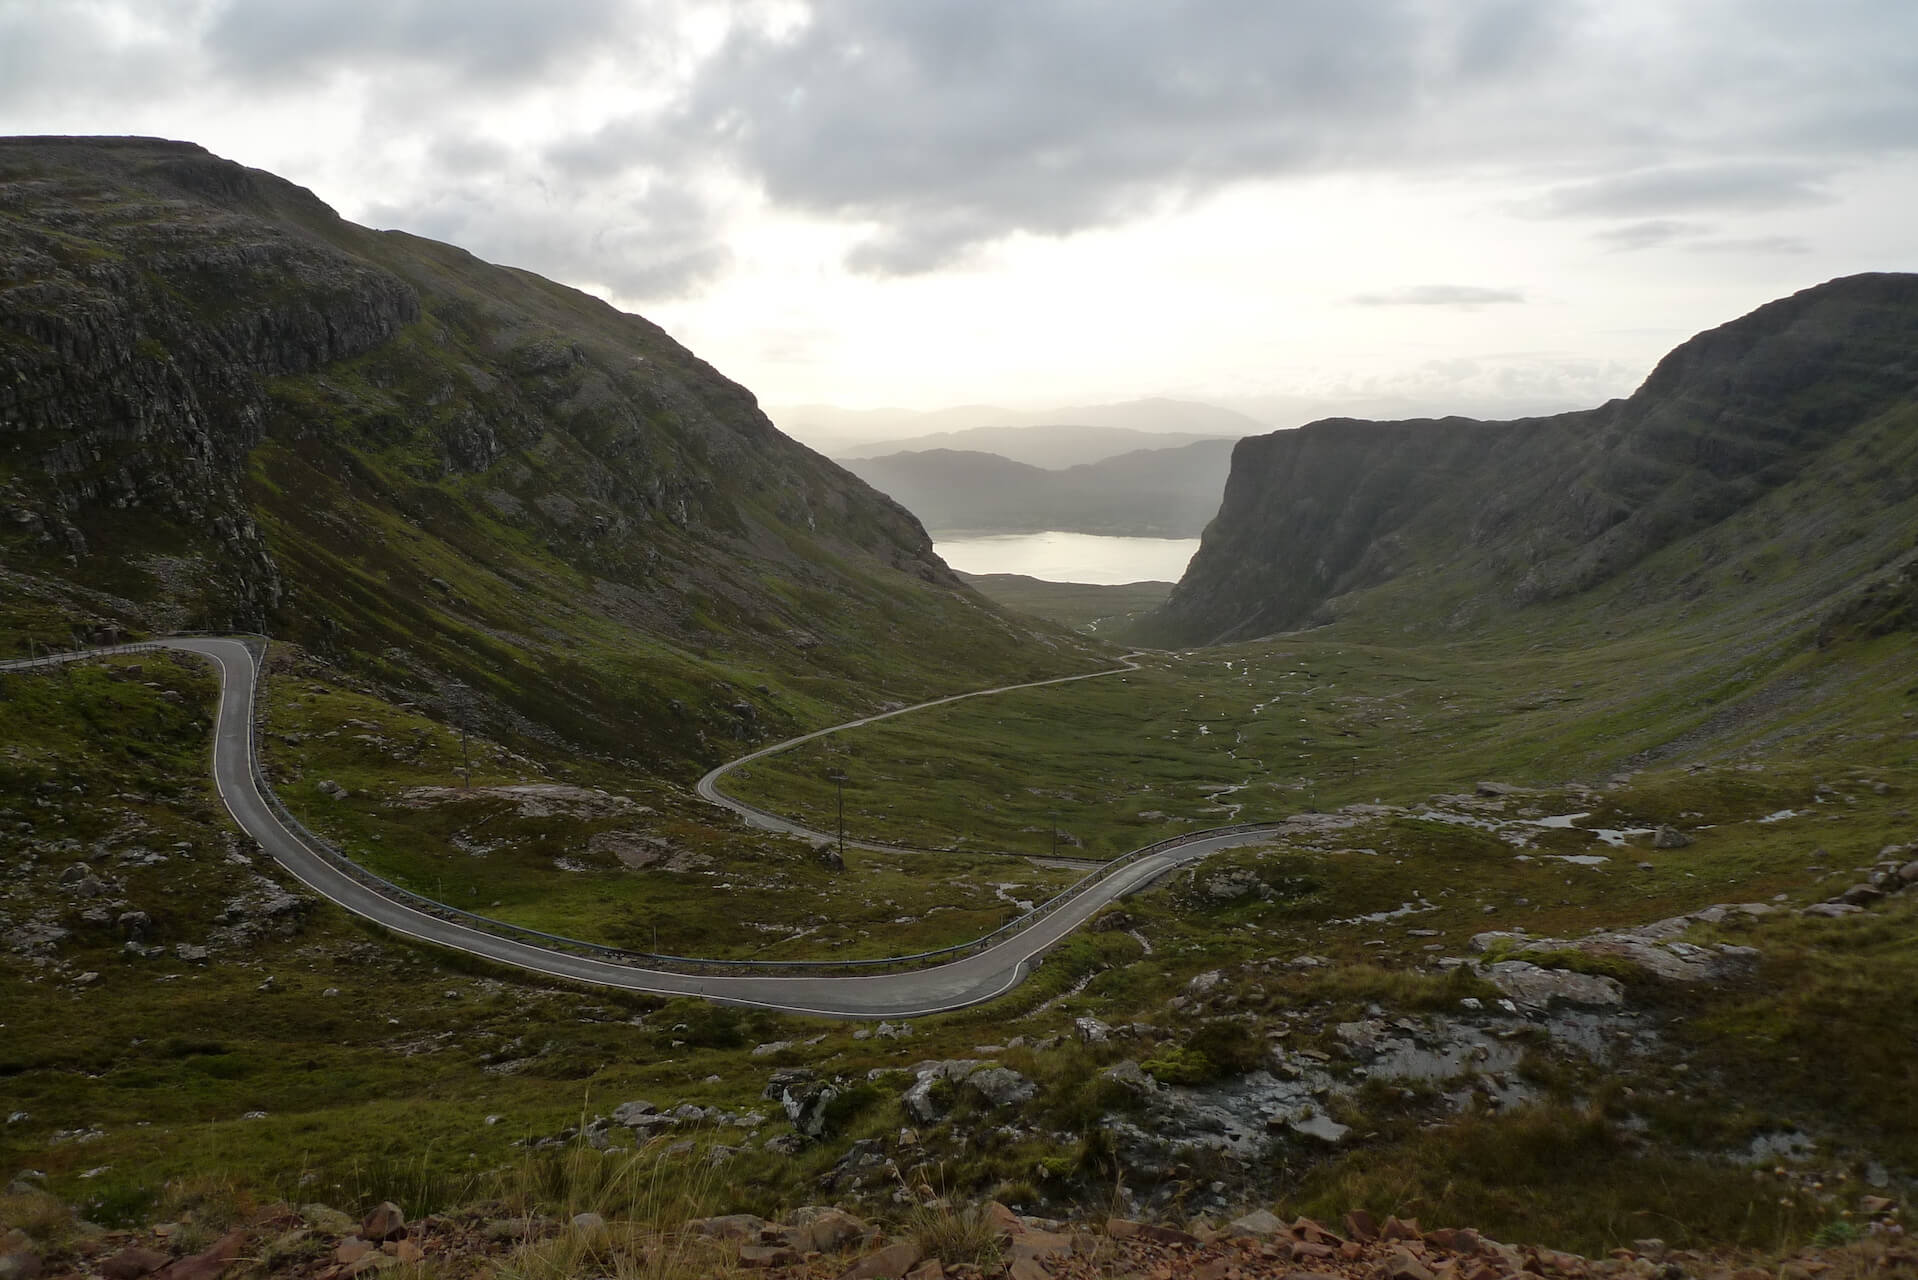 Hairpin bend roads on the Bealach na Bá